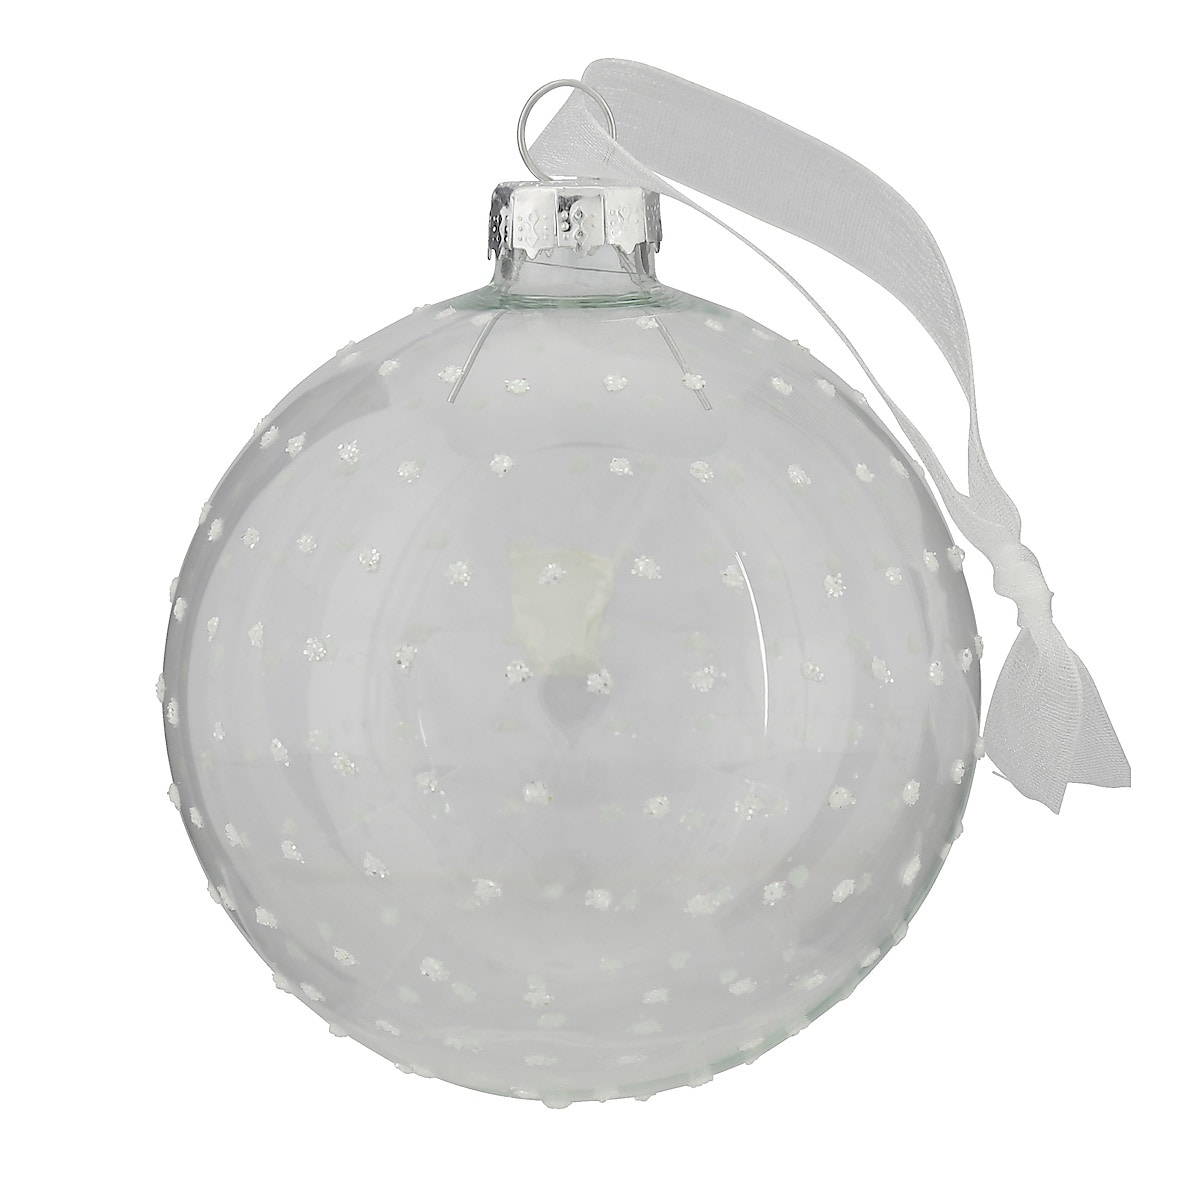 8 cm Christmas Baubles 2-pack